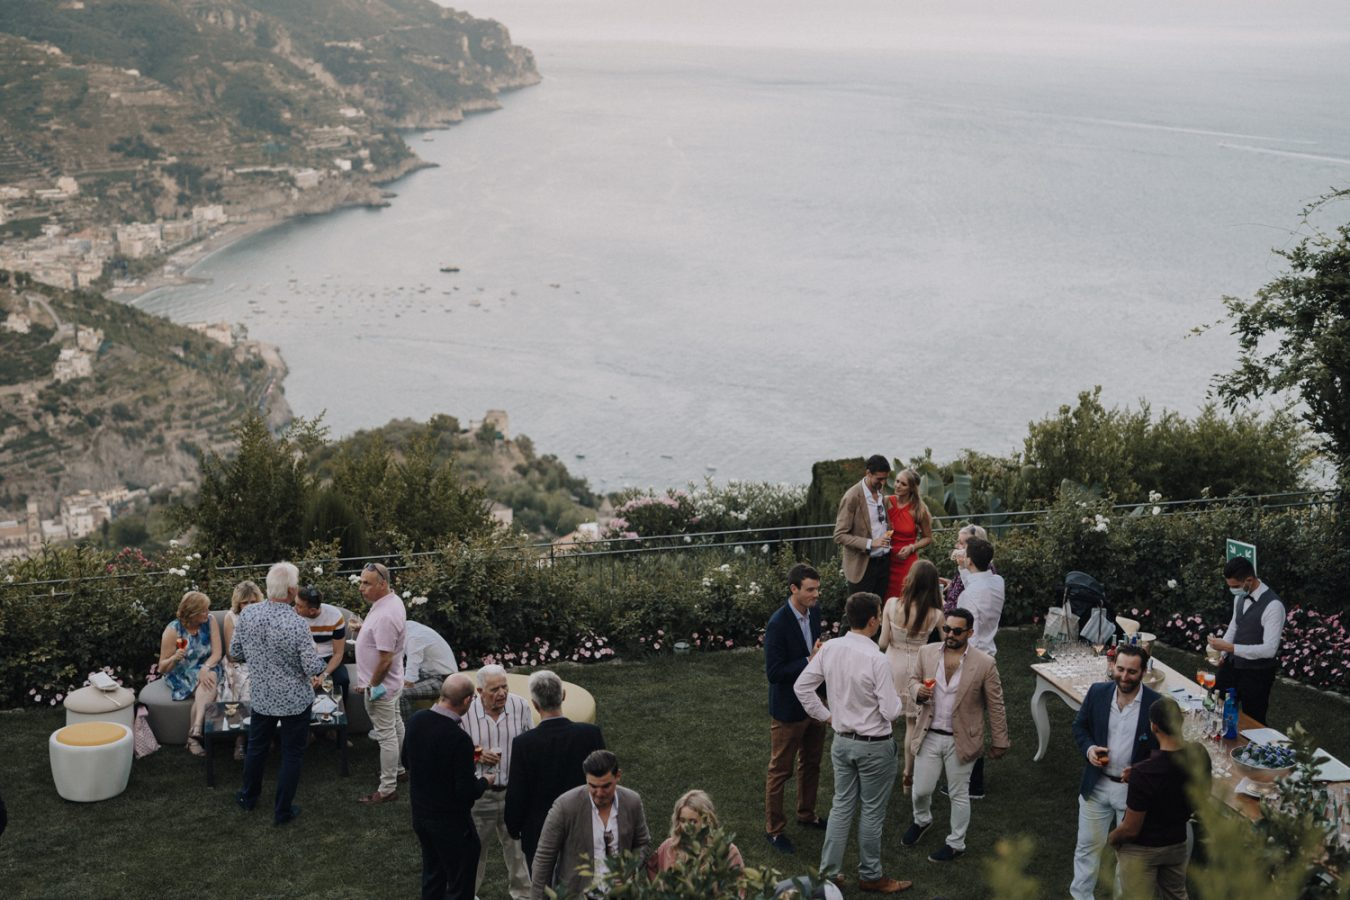 guests and the view of the Amalfi coast, Ravello, Italy